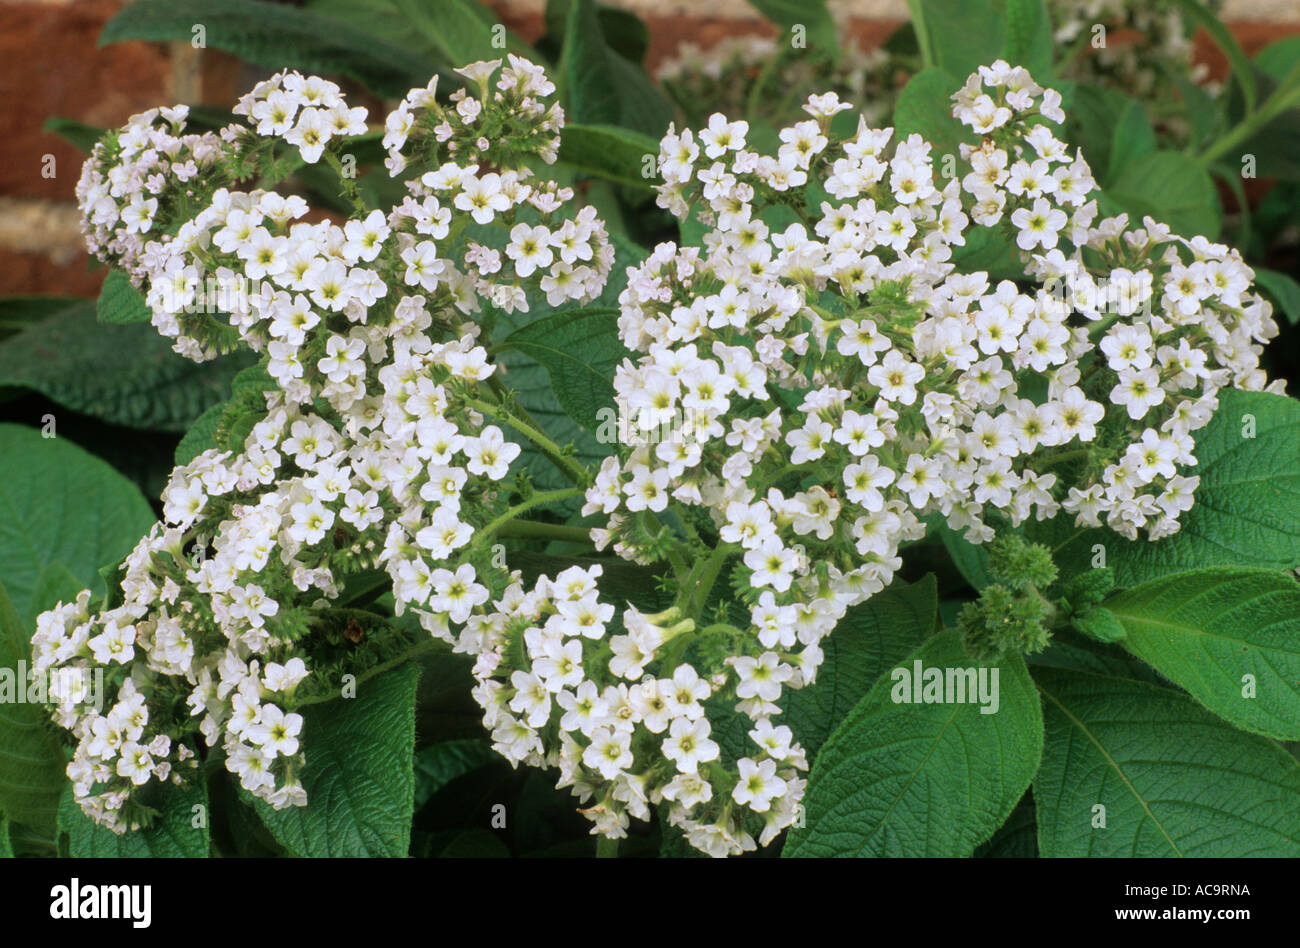 Heliotropium white lady heliotrope heliotropes white flower stock heliotropium white lady heliotrope heliotropes white flower flowers garden plant plants mightylinksfo